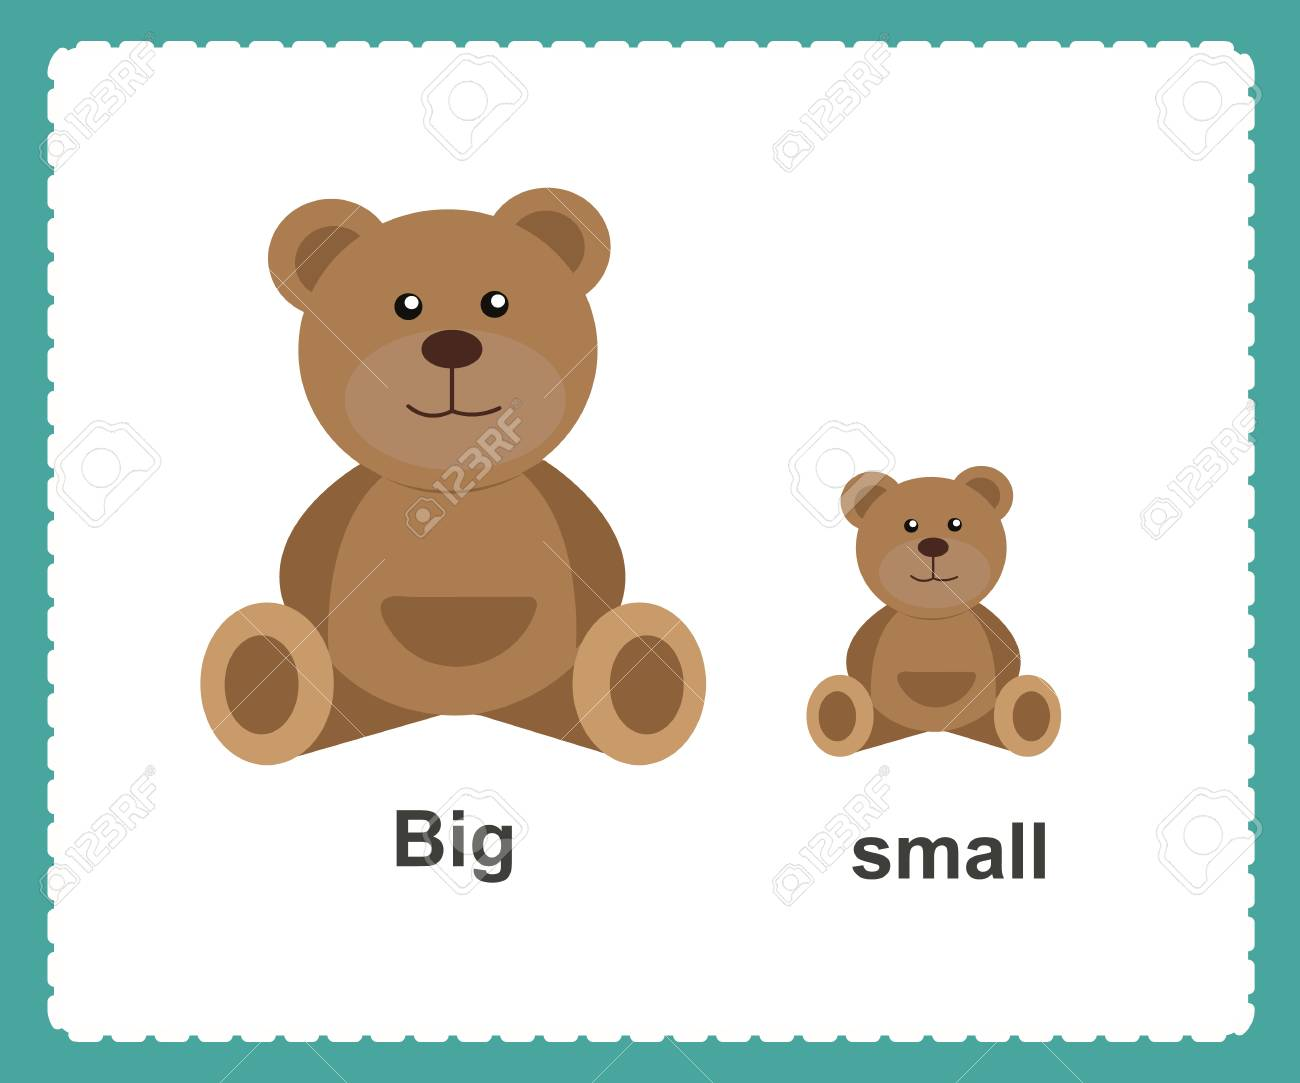 1bdb4fe0d4f3 Opposite English Words big and small vector illustration